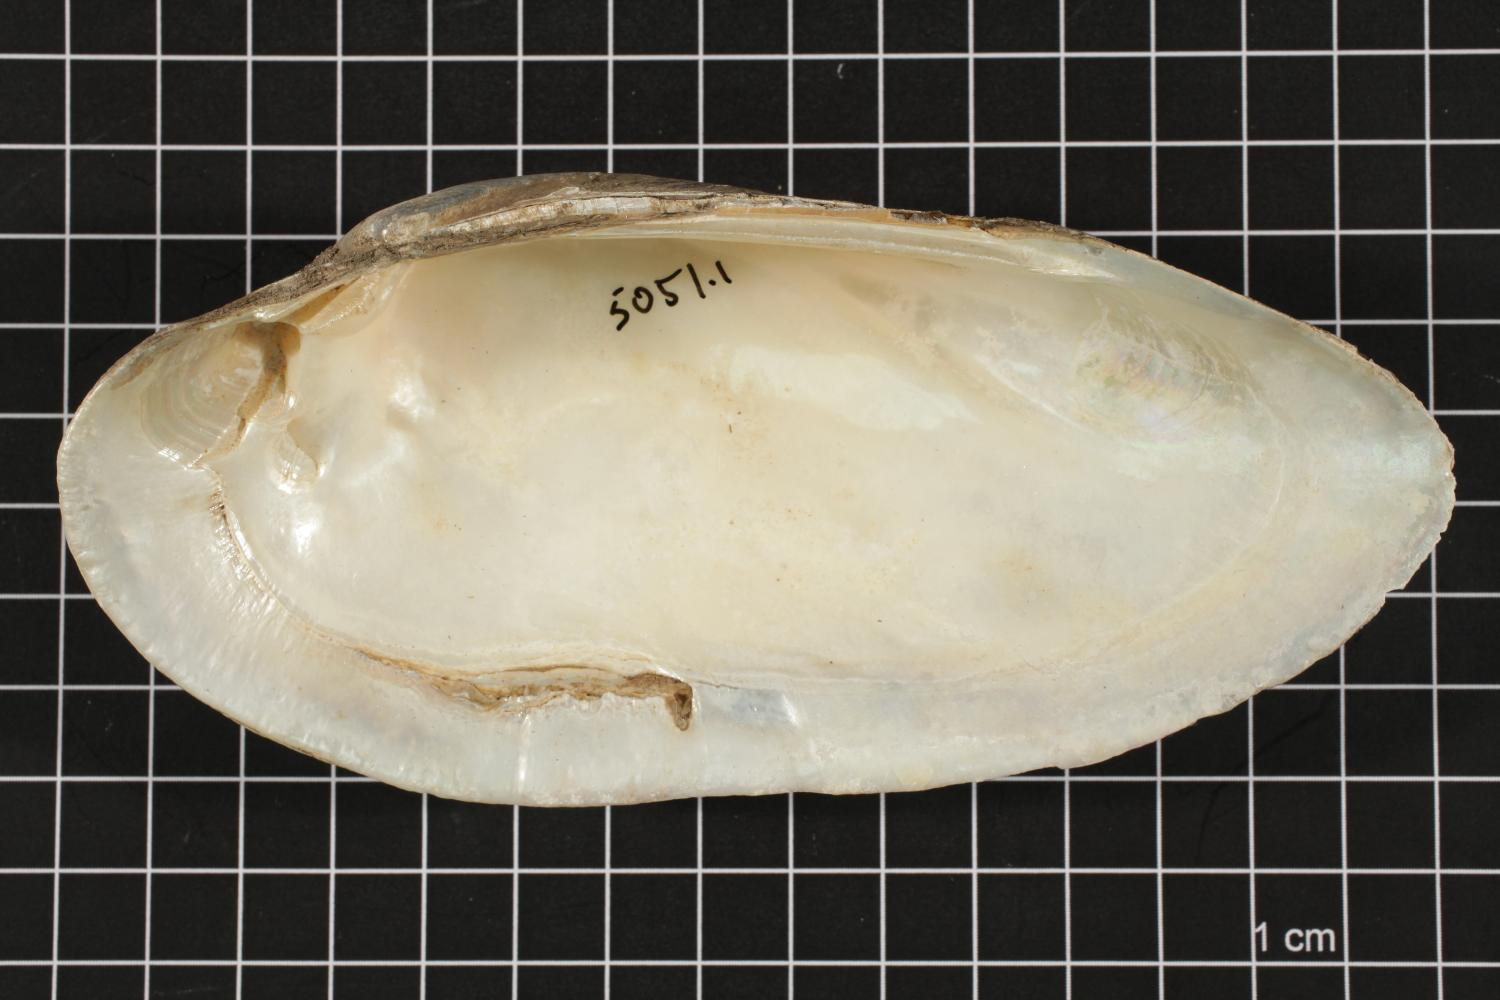 Lampsilis teres, Specimen #412                                                                                                      [Sequence #]: 4 of 6